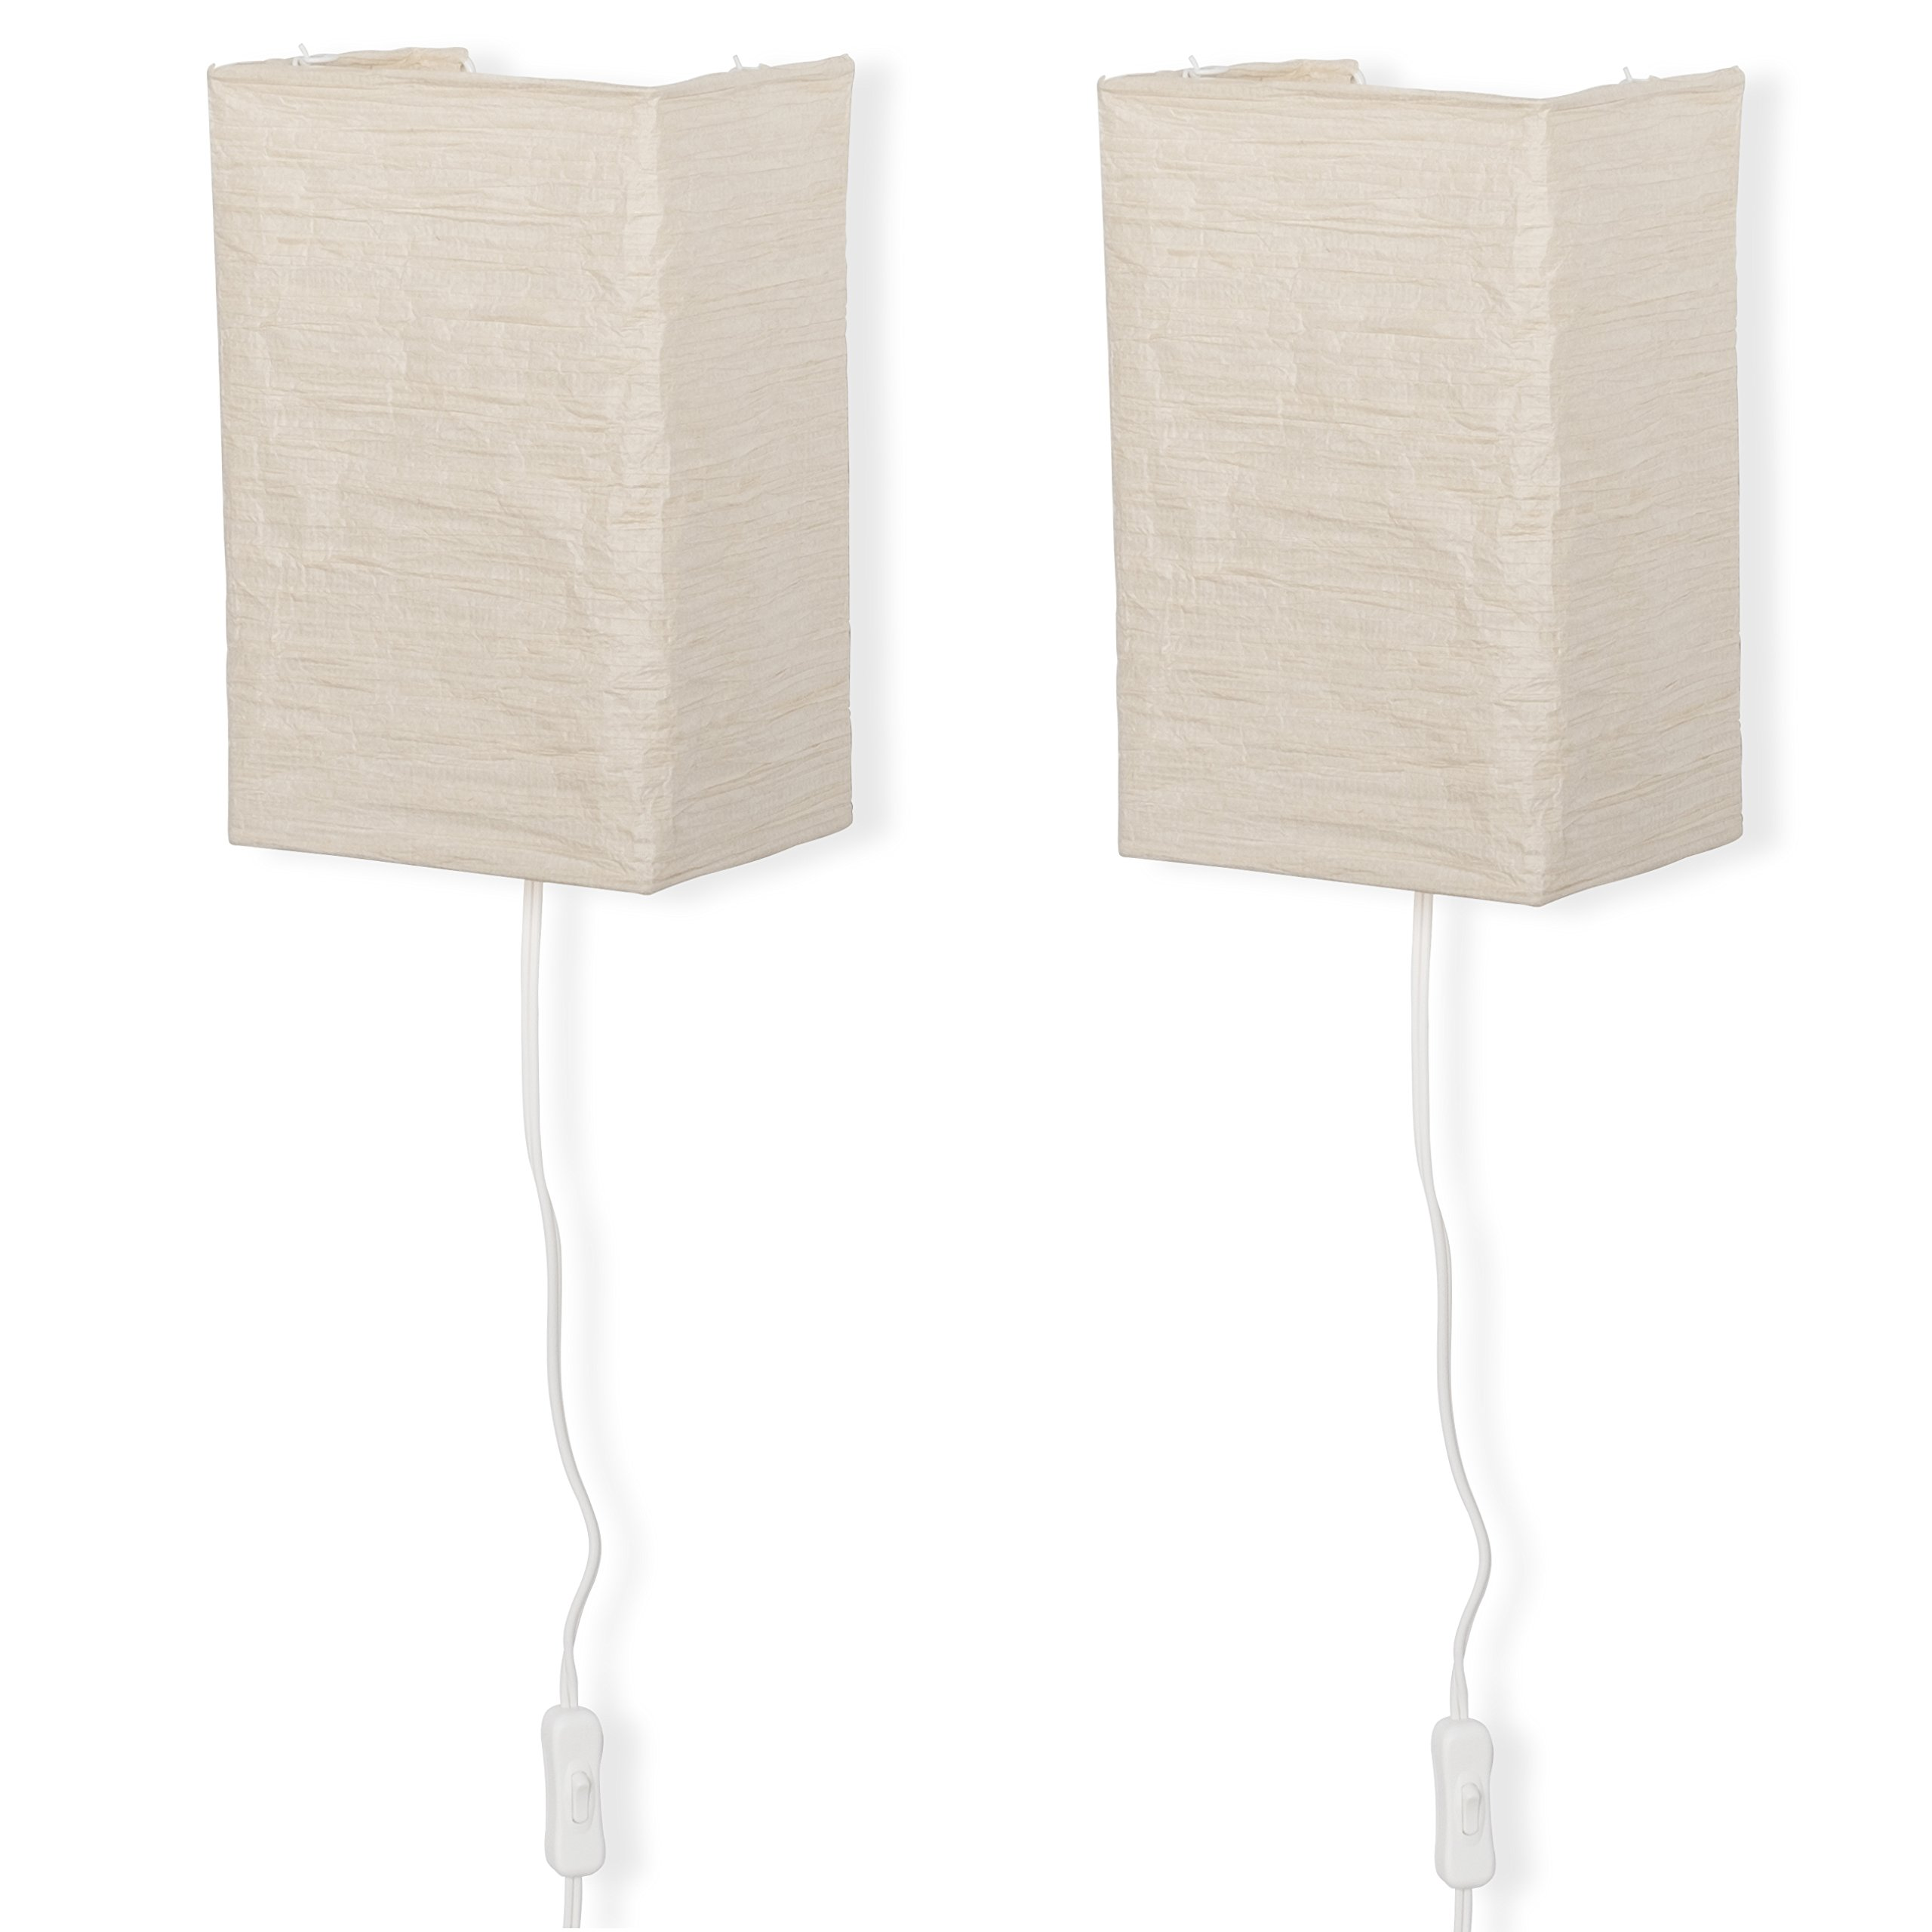 Wallniture Rice Paper Wall Mount Lamp Sconce with Toggle Switch Chandelier Light Bulbs Included Cream Set of 2